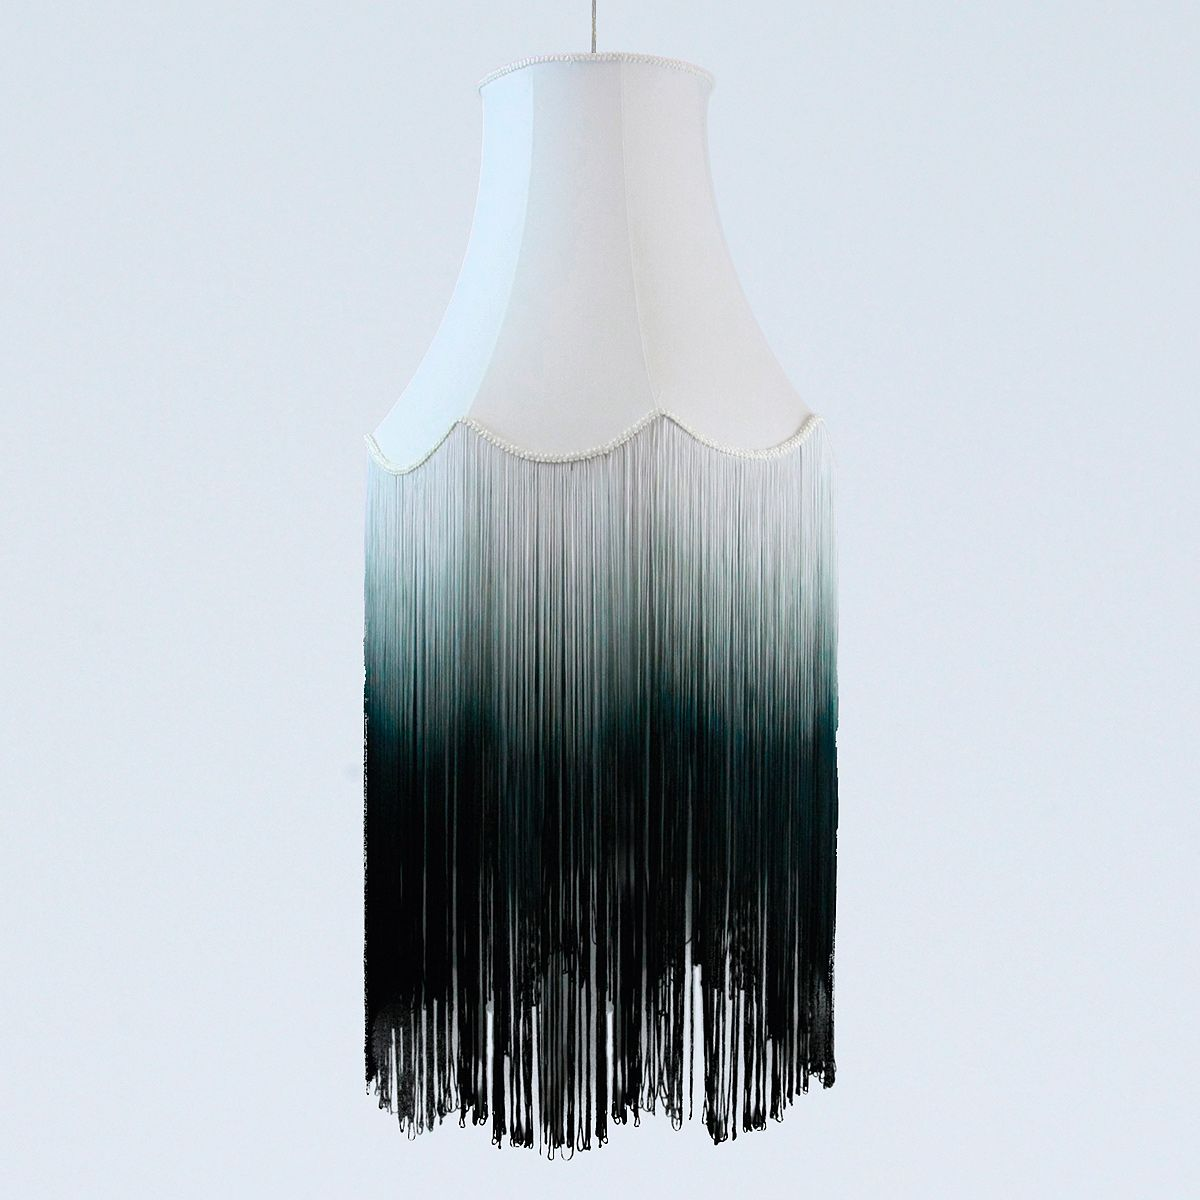 Fade Fringe Lampshade Maybe Spray Paint A Design Or Bird